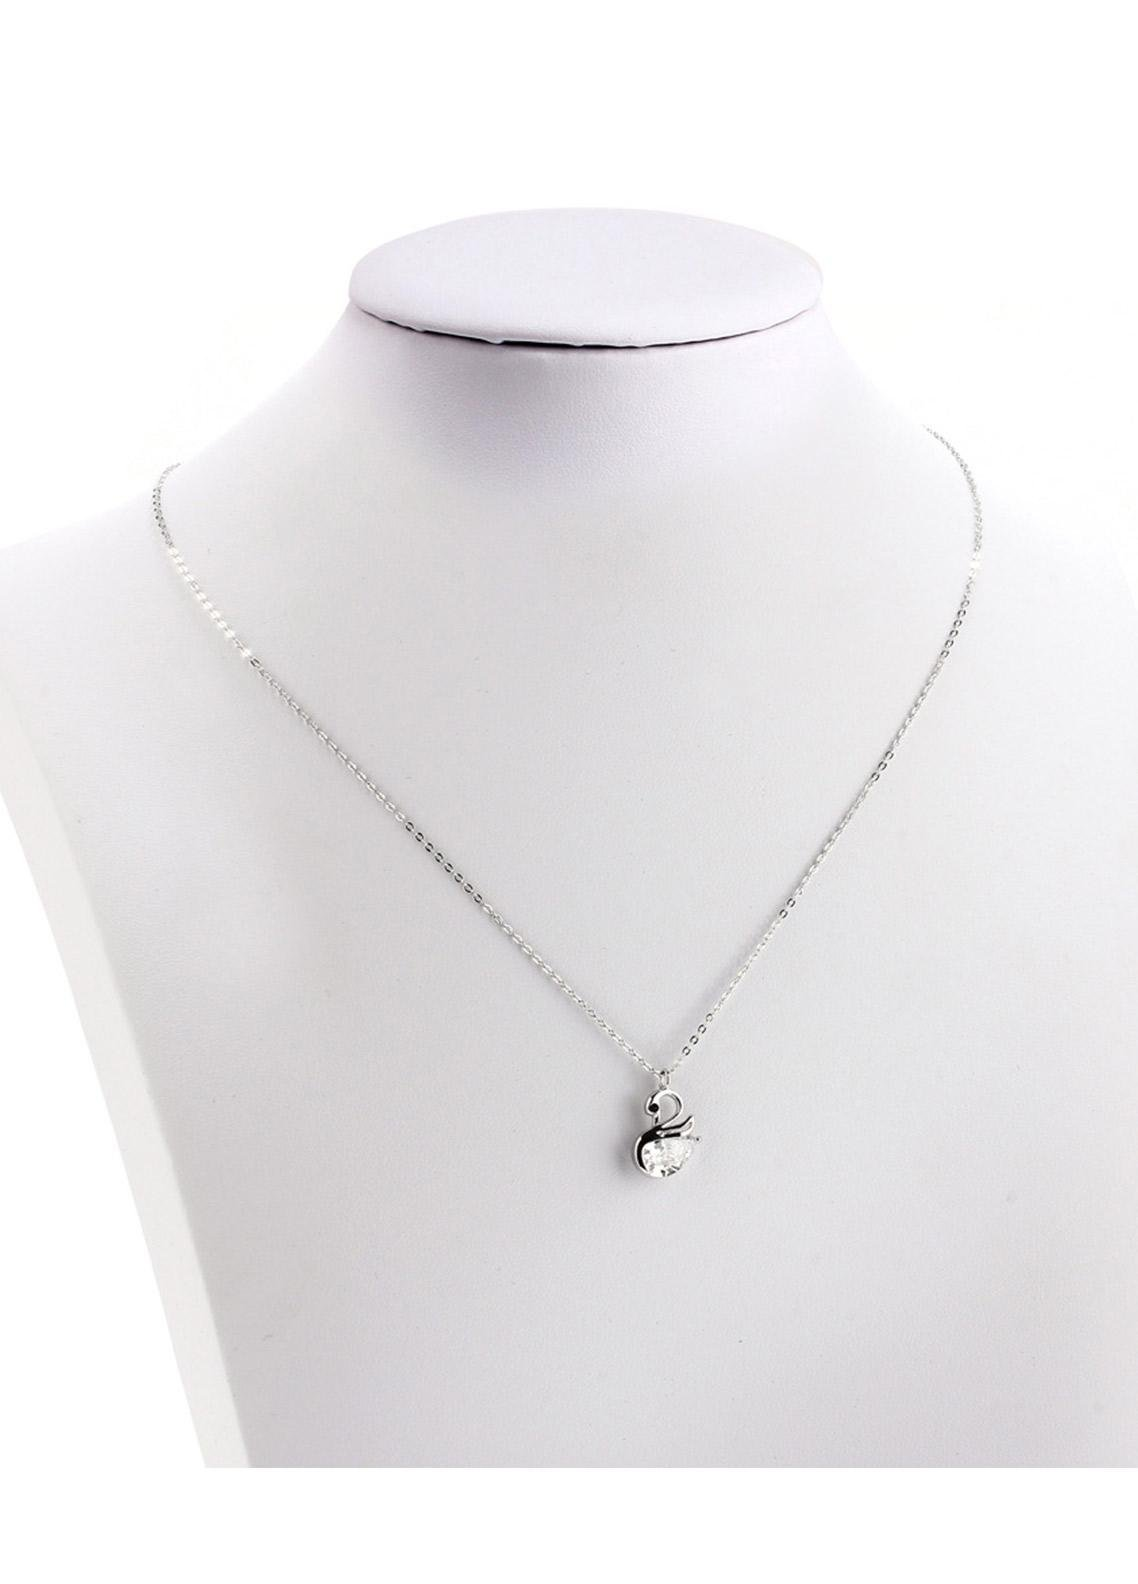 Anna Grace London by Silk Avenue Silver Plated Crystal Swan Necklace AGN0043 - Ladies Jewellery